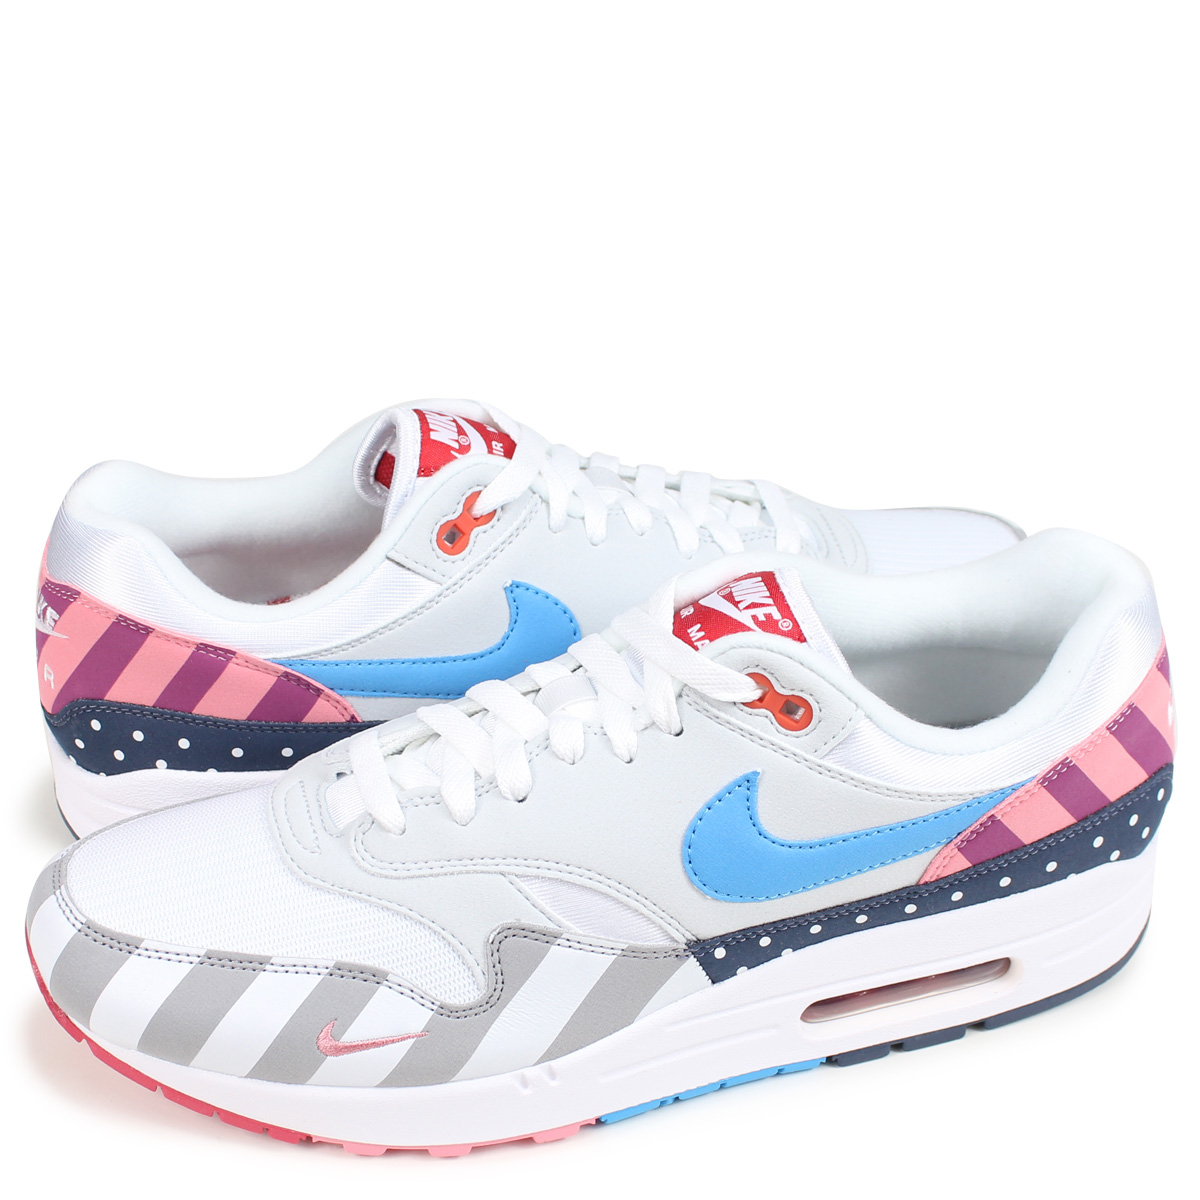 finest selection 4e4b3 1f7d6 NIKE AIR MAX 1 PARRA Kie Ney AMAX 1 sneakers men AT3057-100 white  189